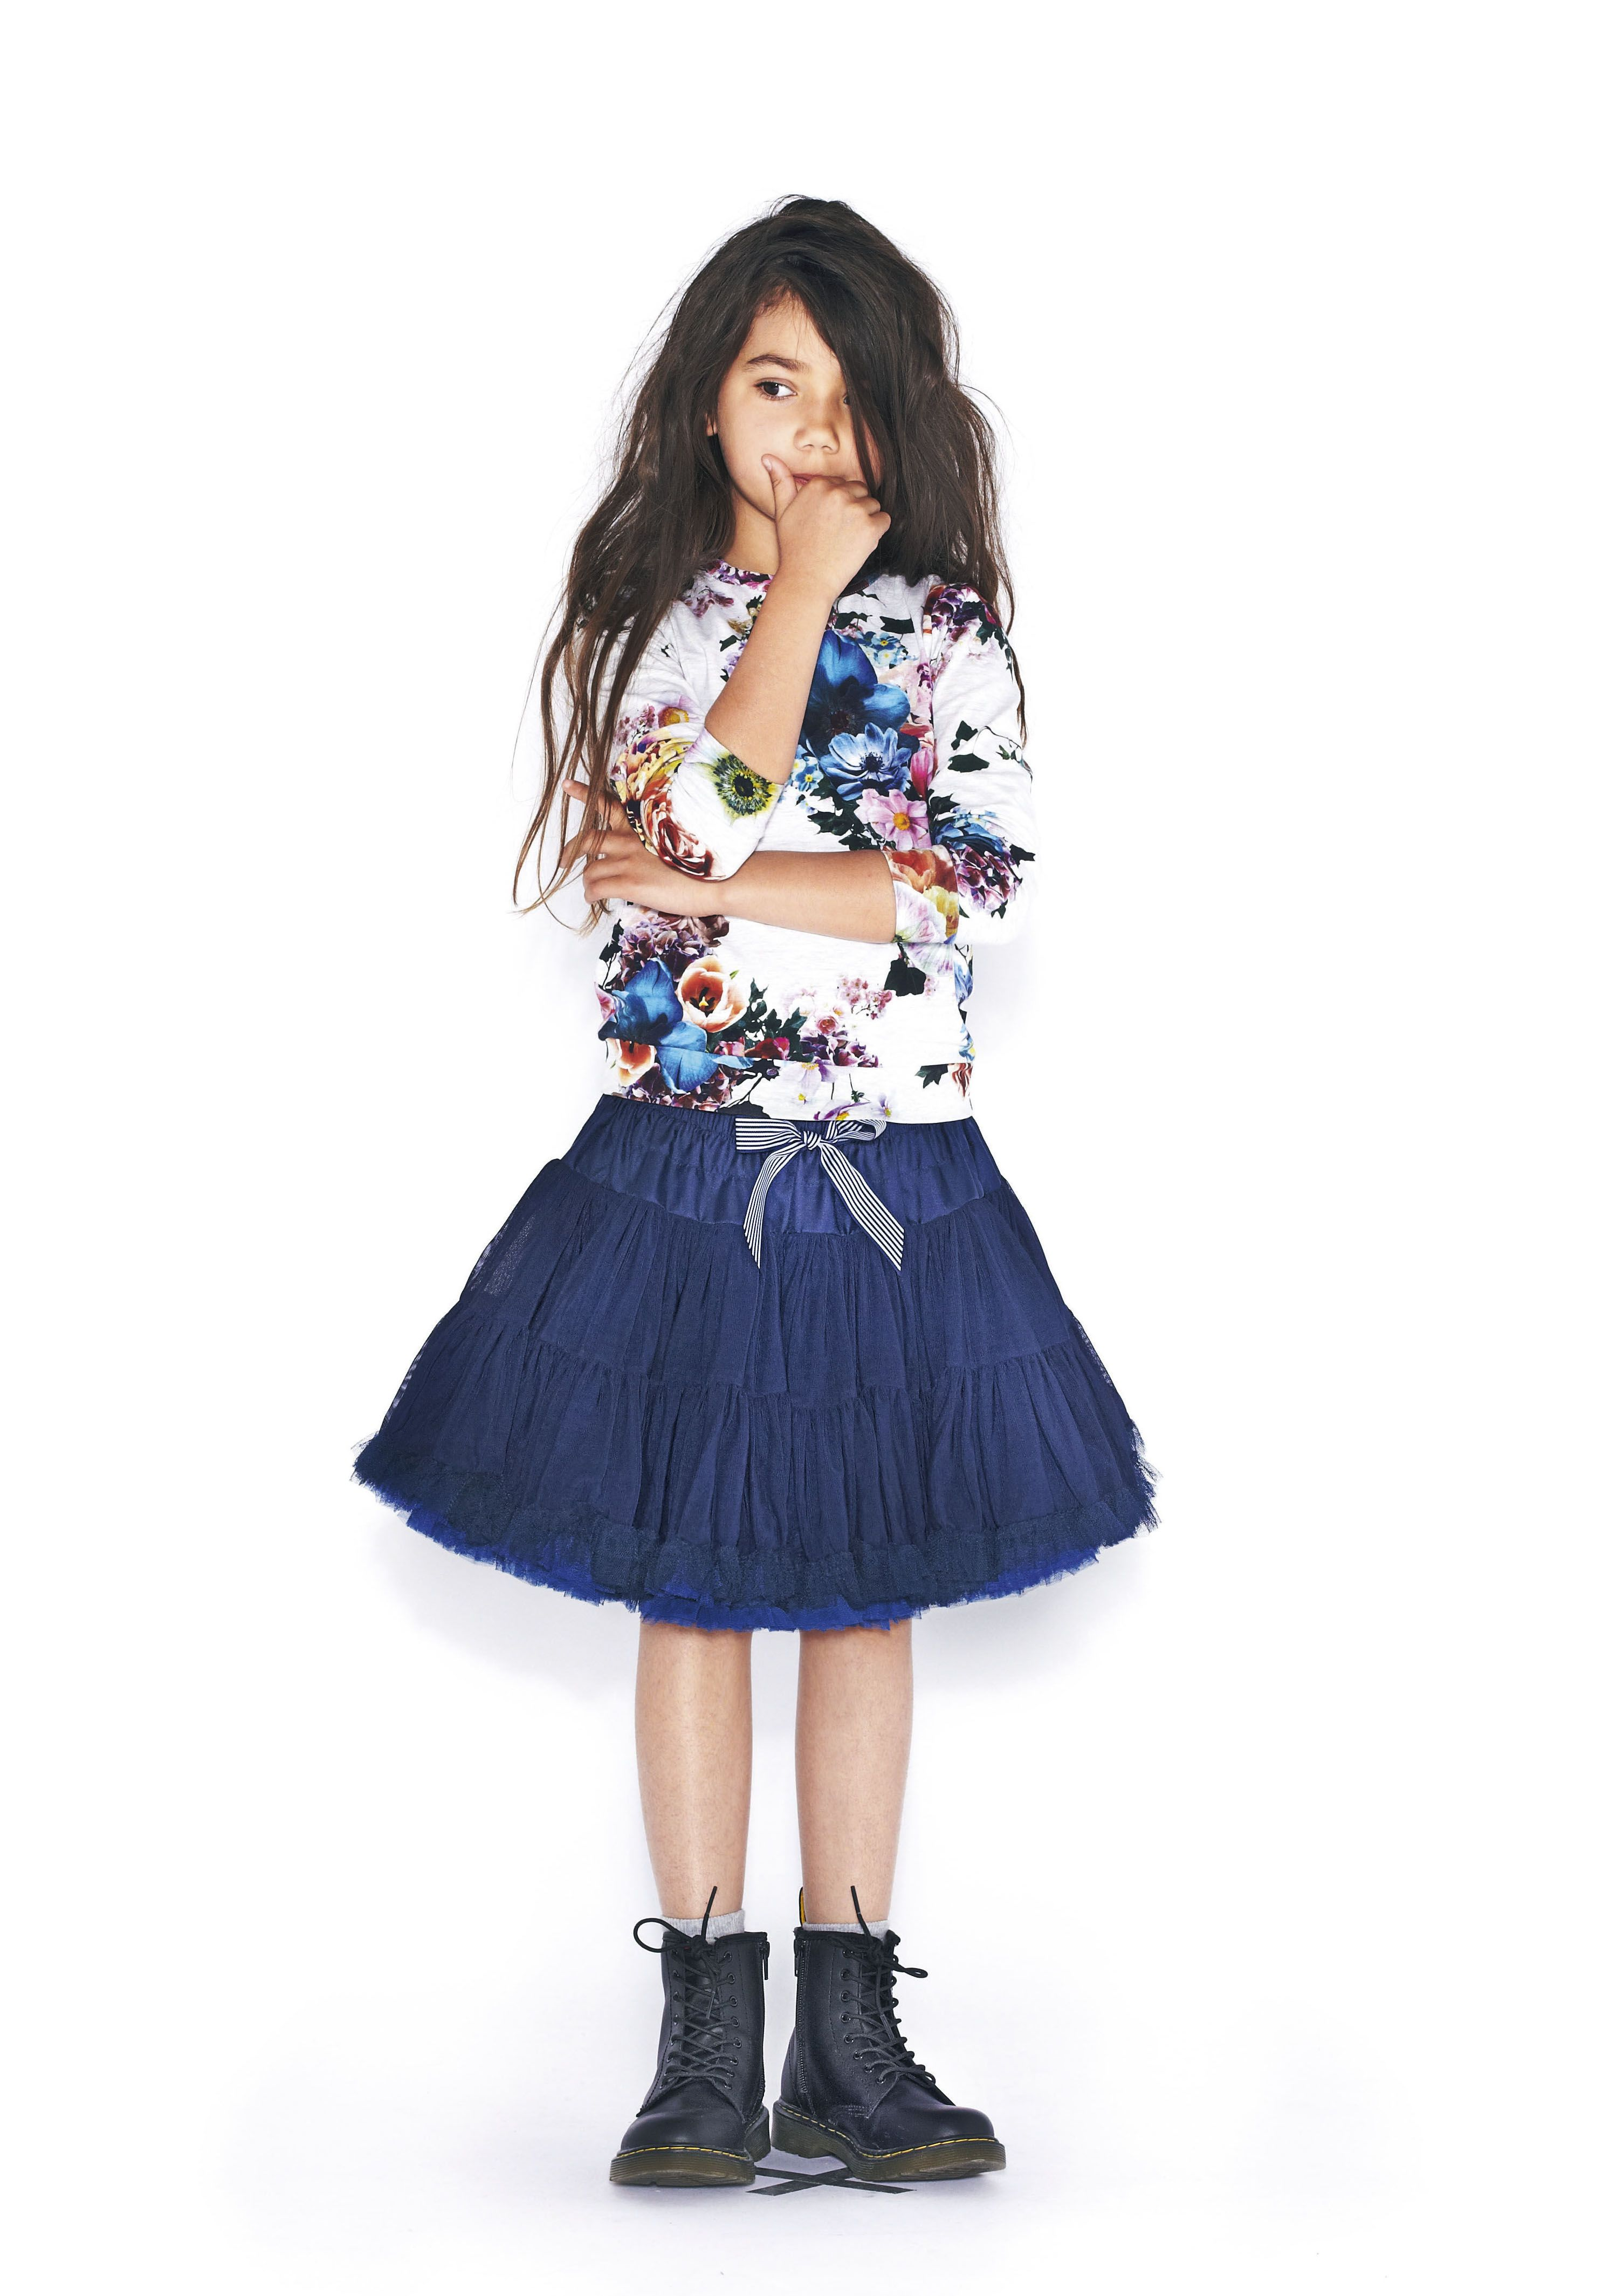 See This Cool Clothing From Molo Kids Molokids My Three